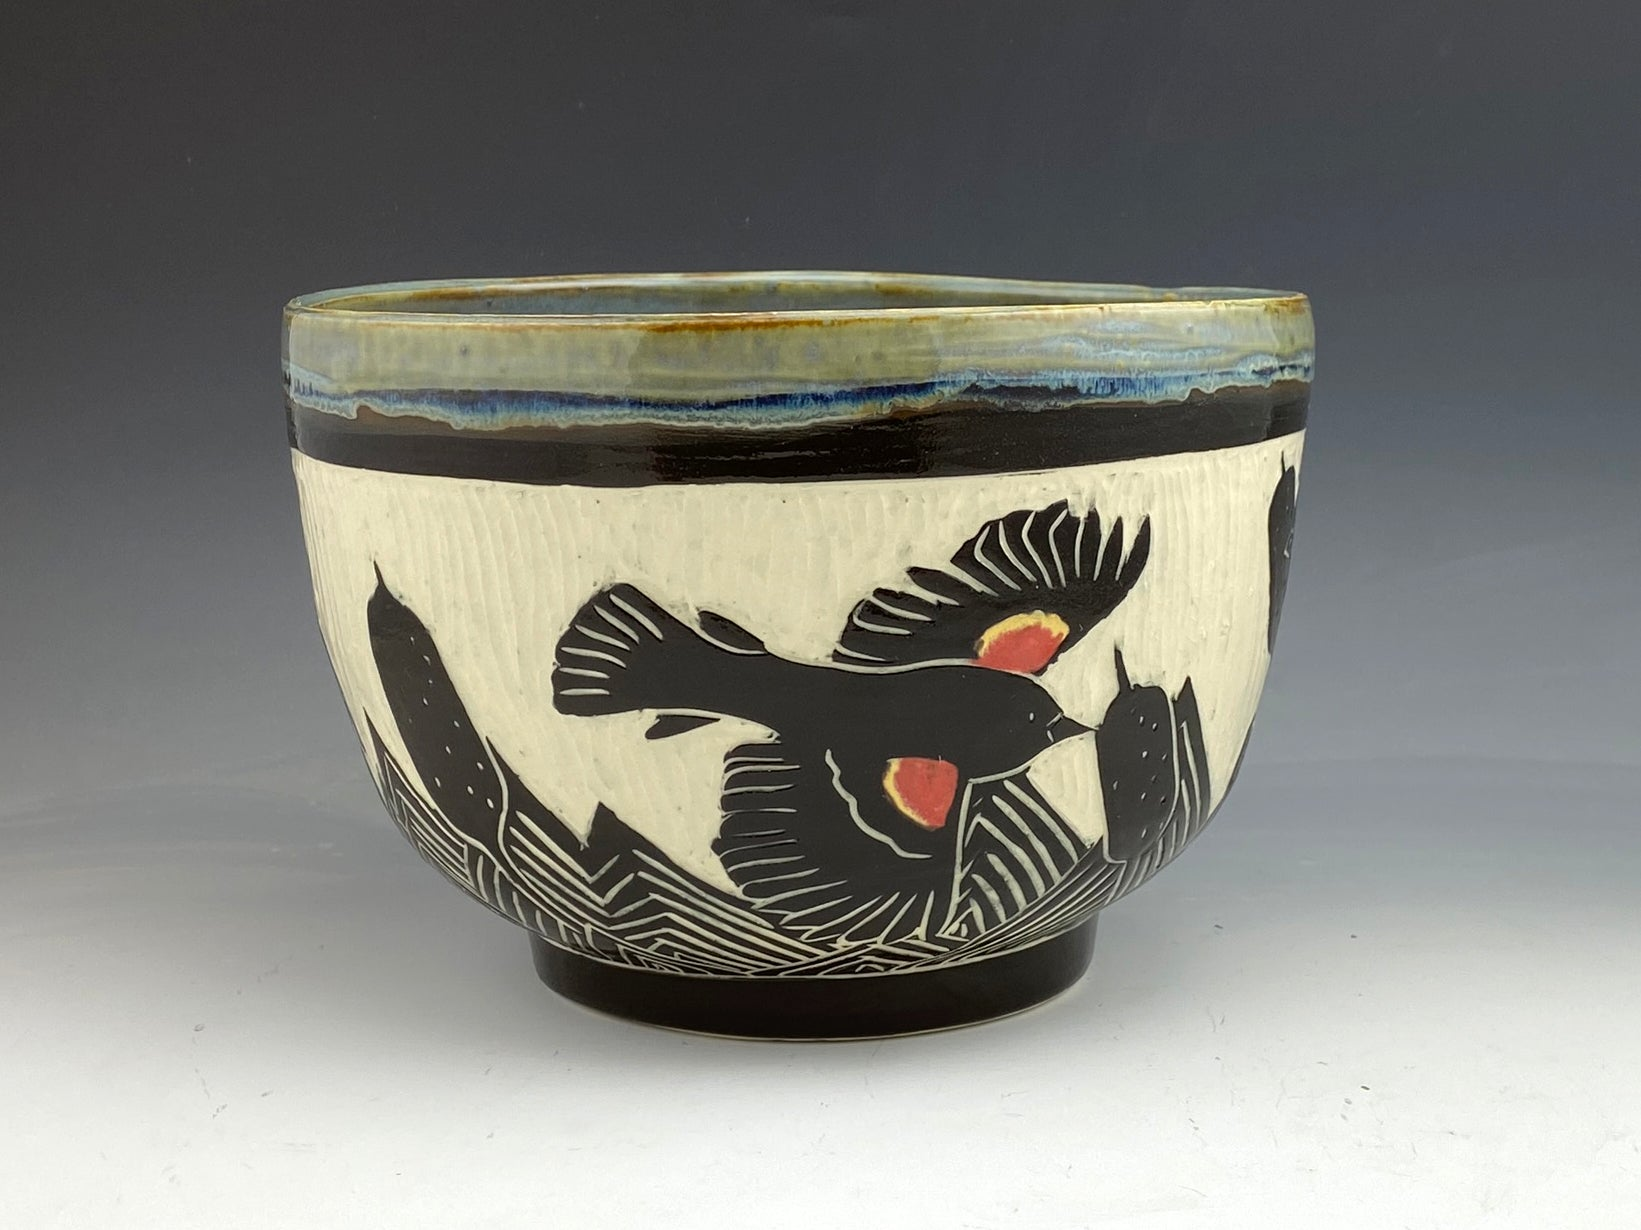 Red Winged Blackbird Serving Bowl in Gray Handmade Sgraffito Pottery